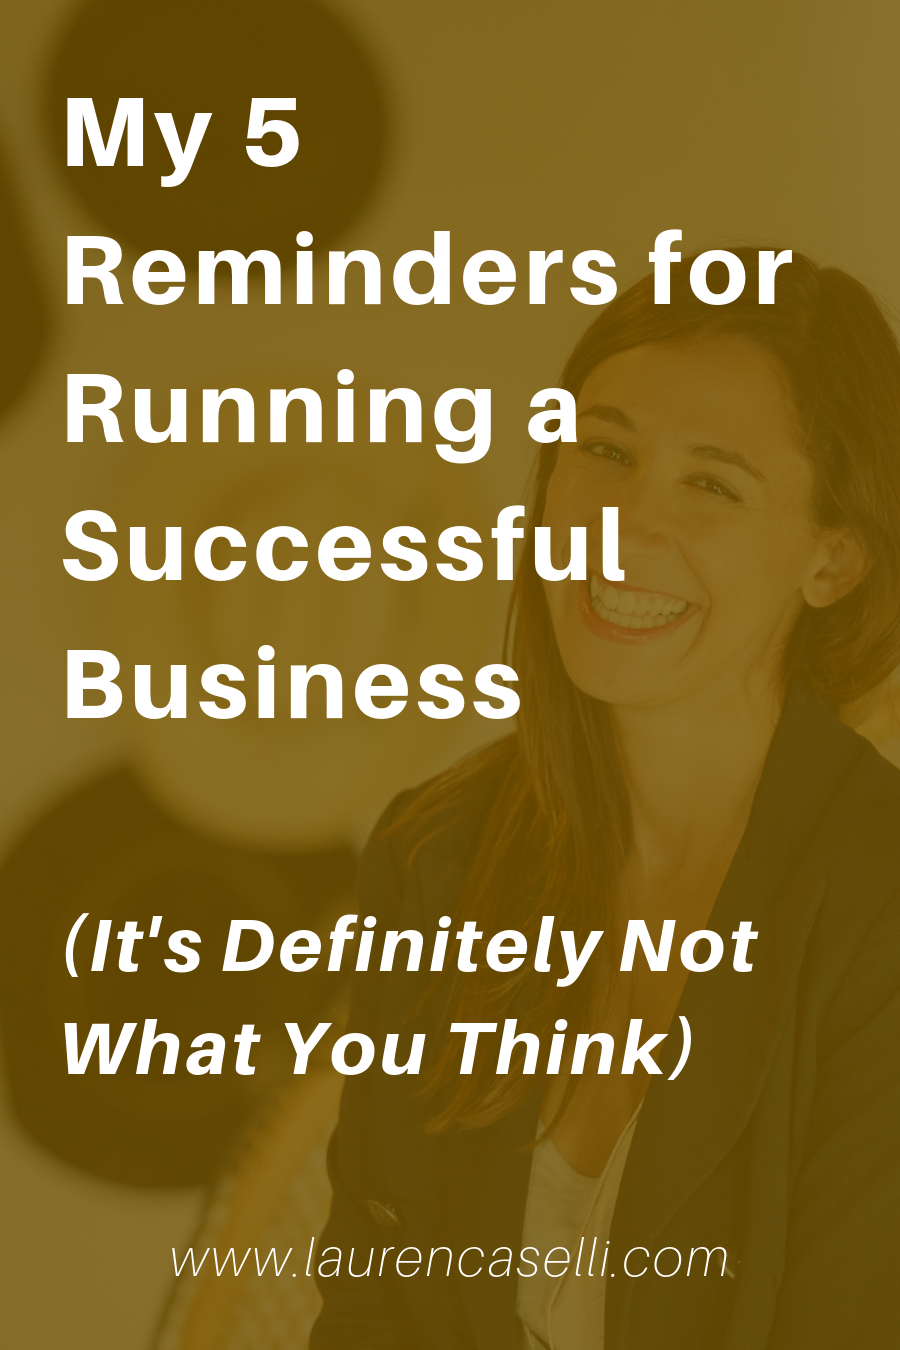 The rules for running a successful business